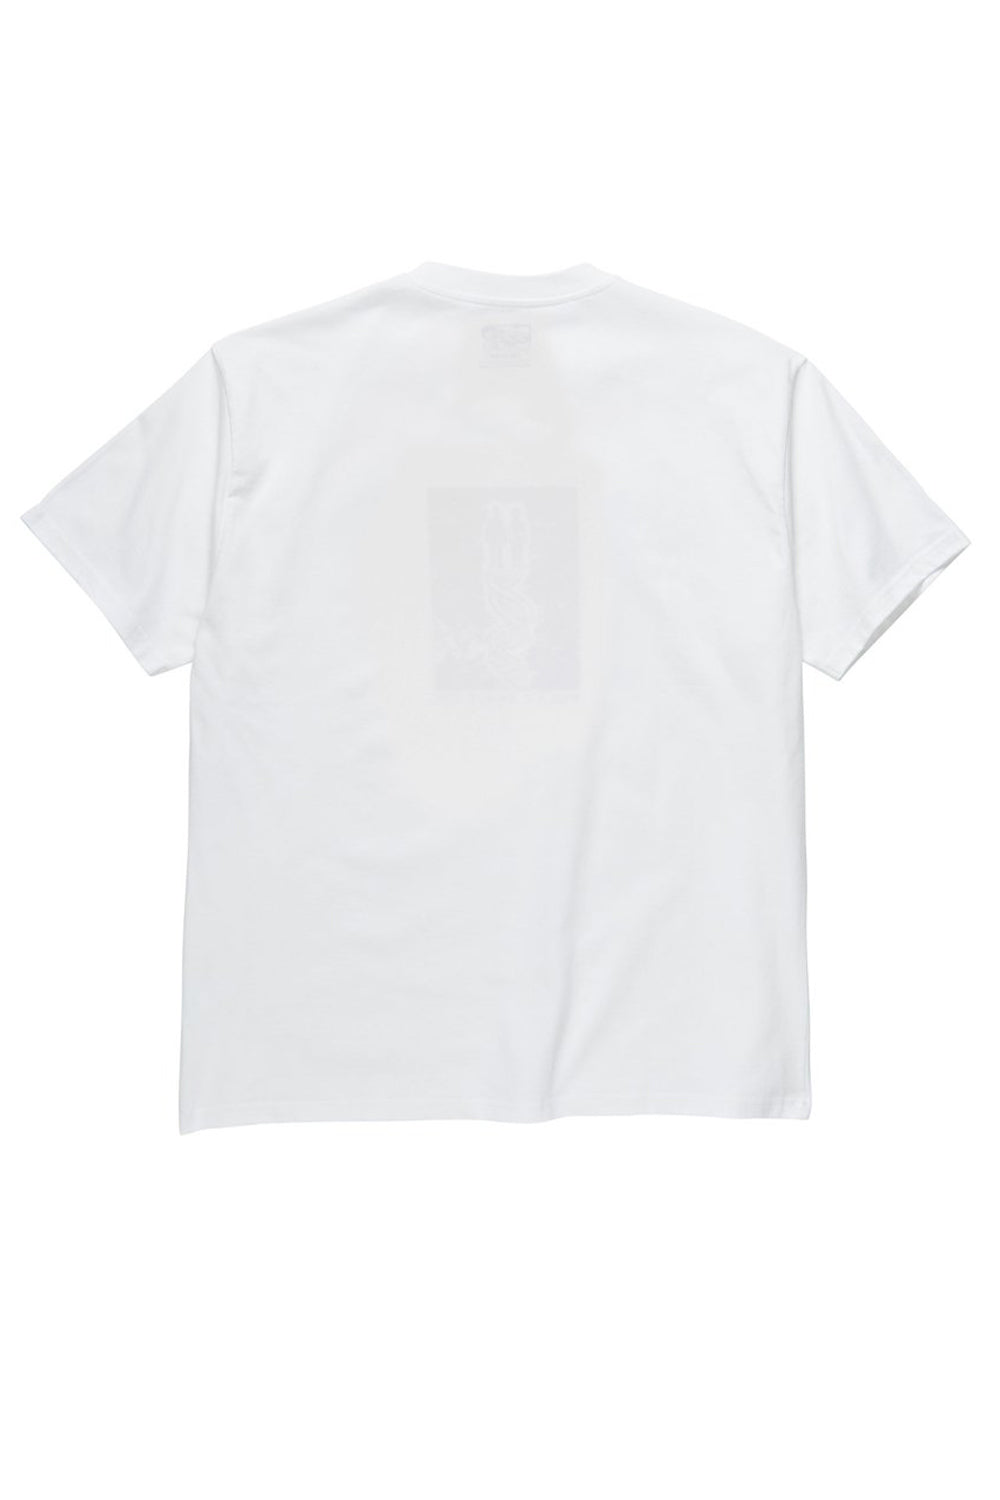 Polar Skate Co DNA T-Shirt - White